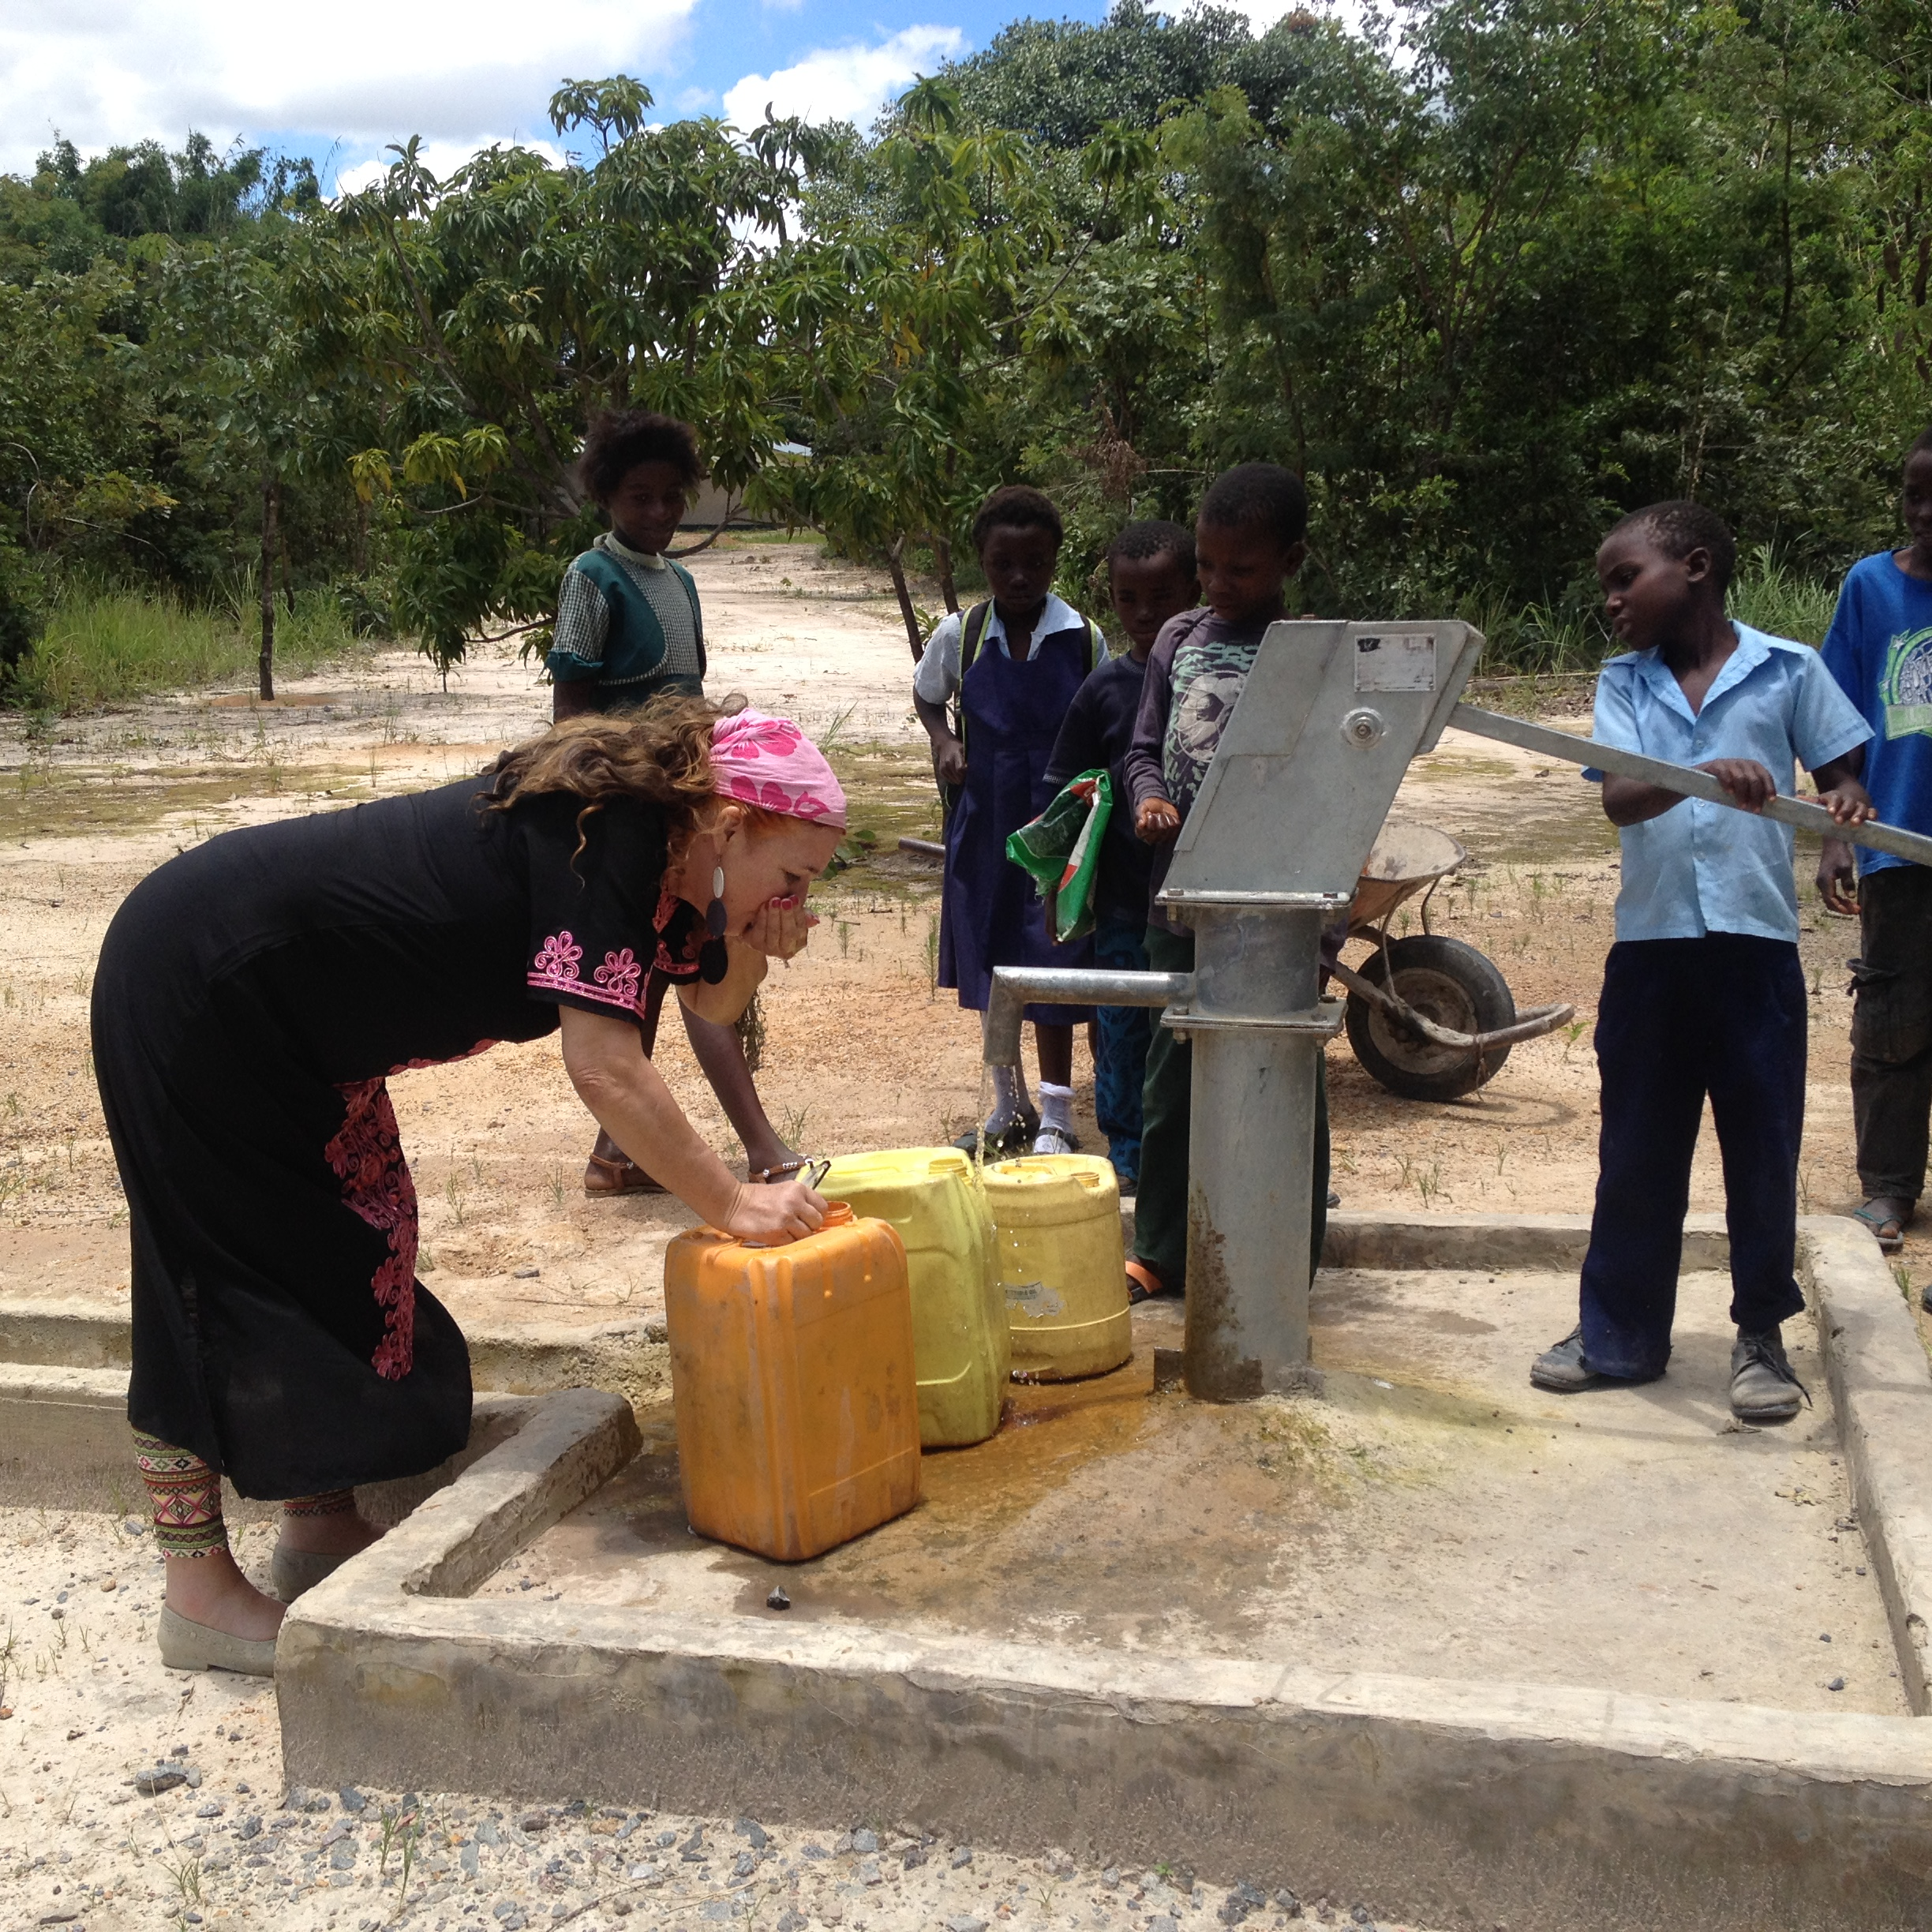 February - Partnered with Rotary clubs in Mississauga to put 20 clean water wellsin Mbayi.